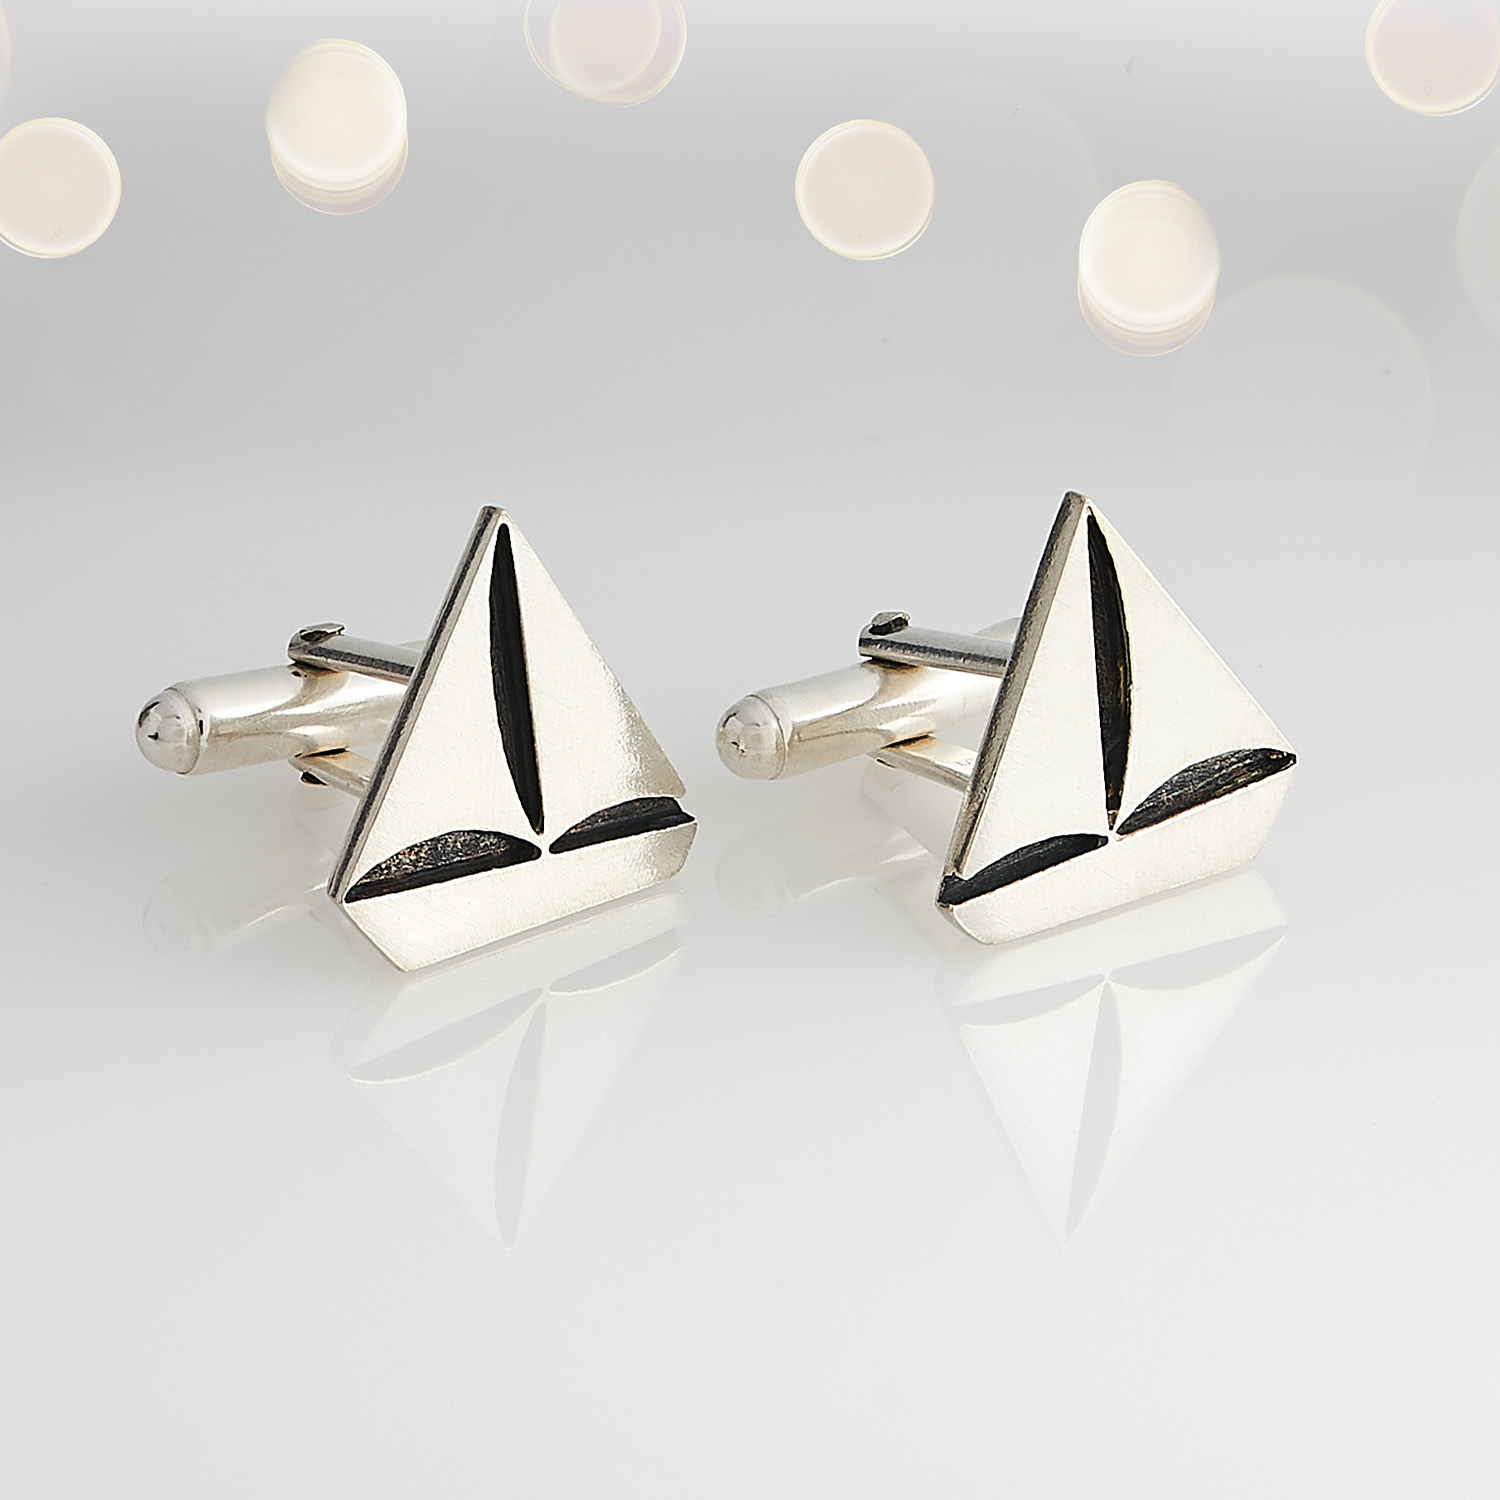 Cufflinks in the style of boats product photograph with white background and reflection